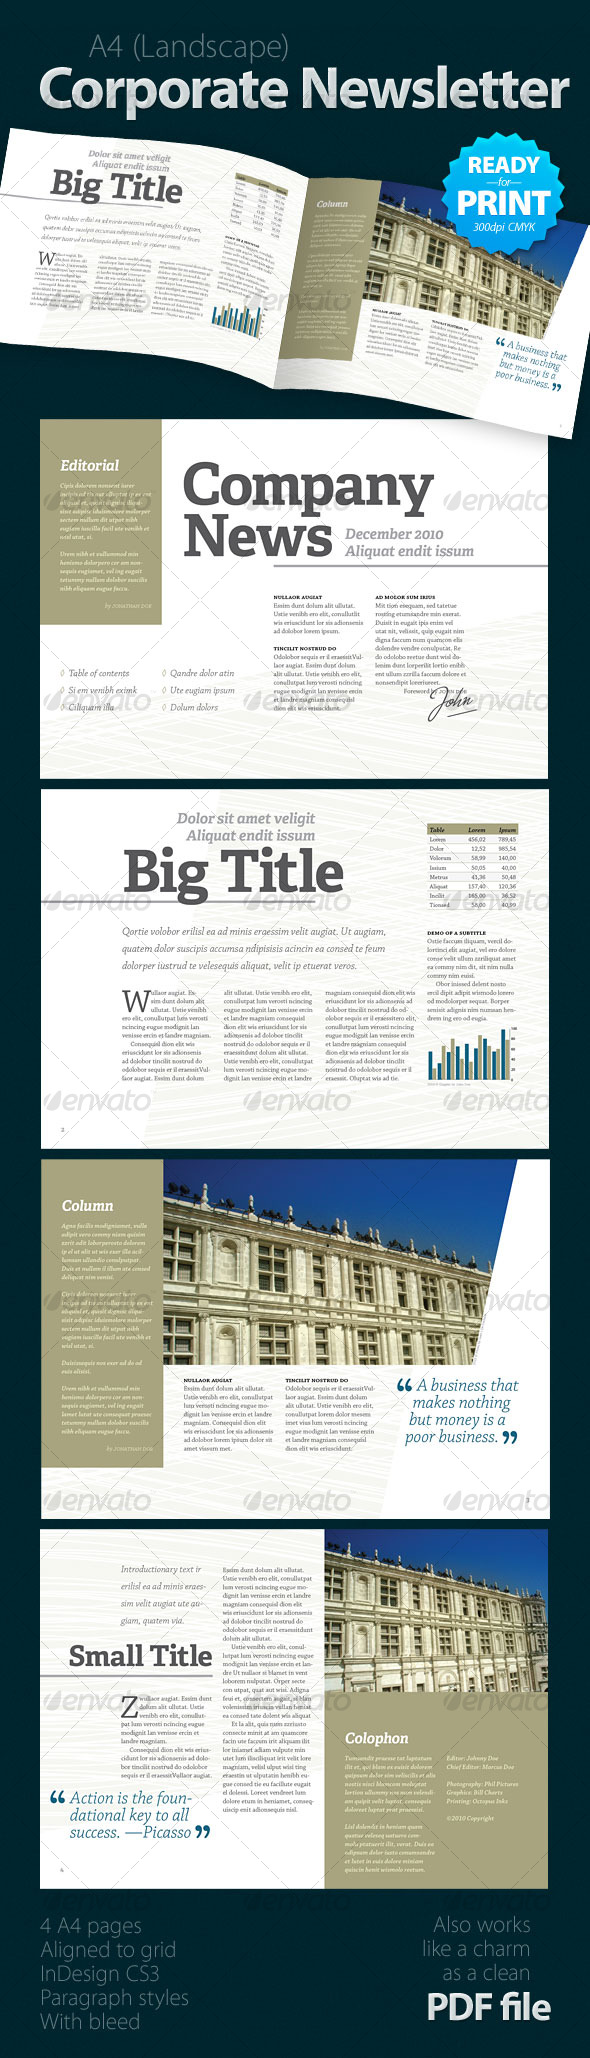 GraphicRiver Corporate Newsletter 4 pages 124051